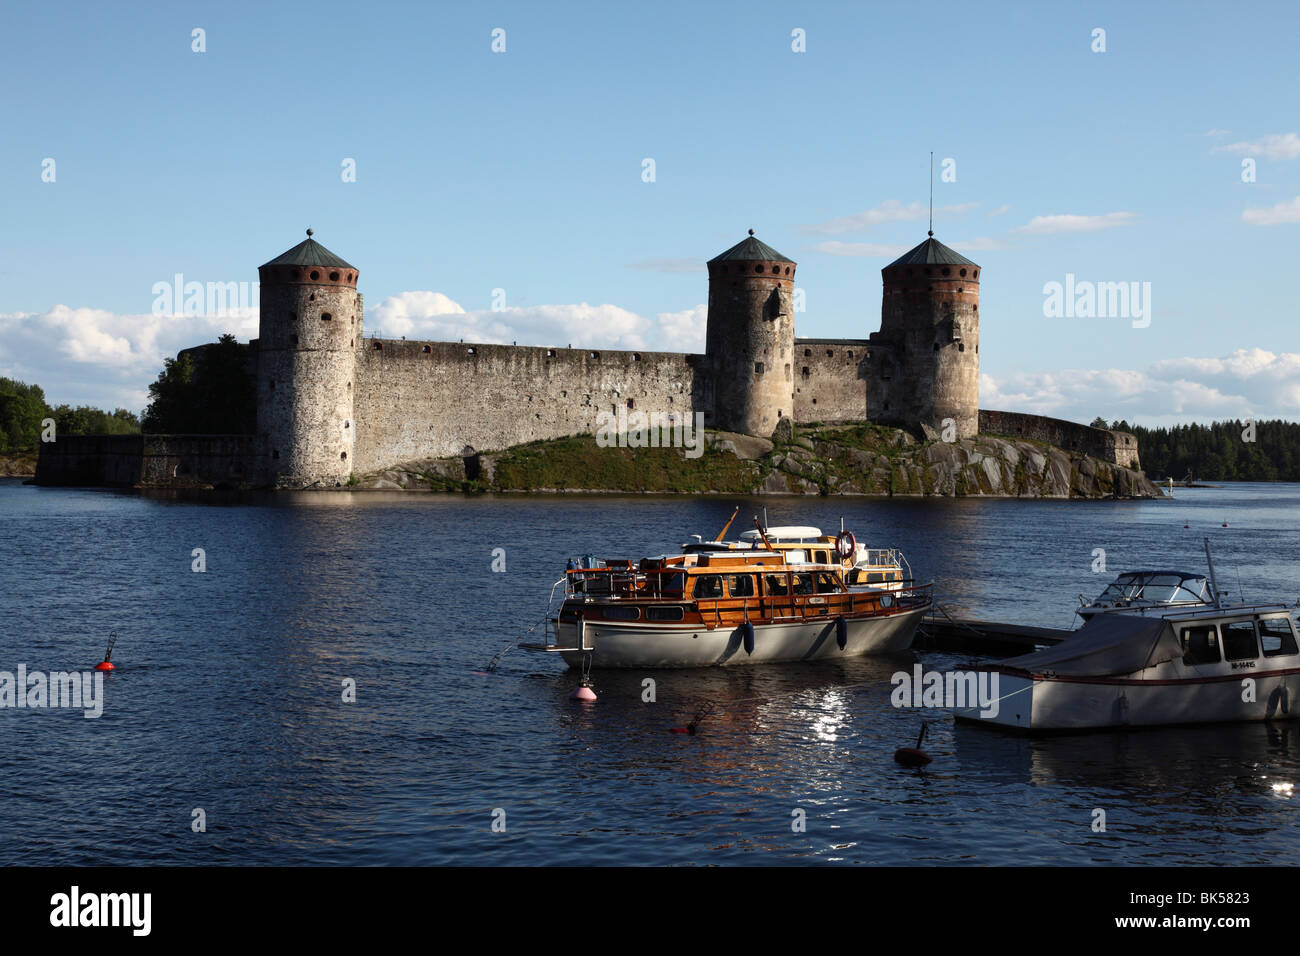 Boat moored in front of Olavinlinna Medieval Castle (St. Olaf's Castle), Savonlinna, Saimaa Lake, Savonia, Finland Stock Photo